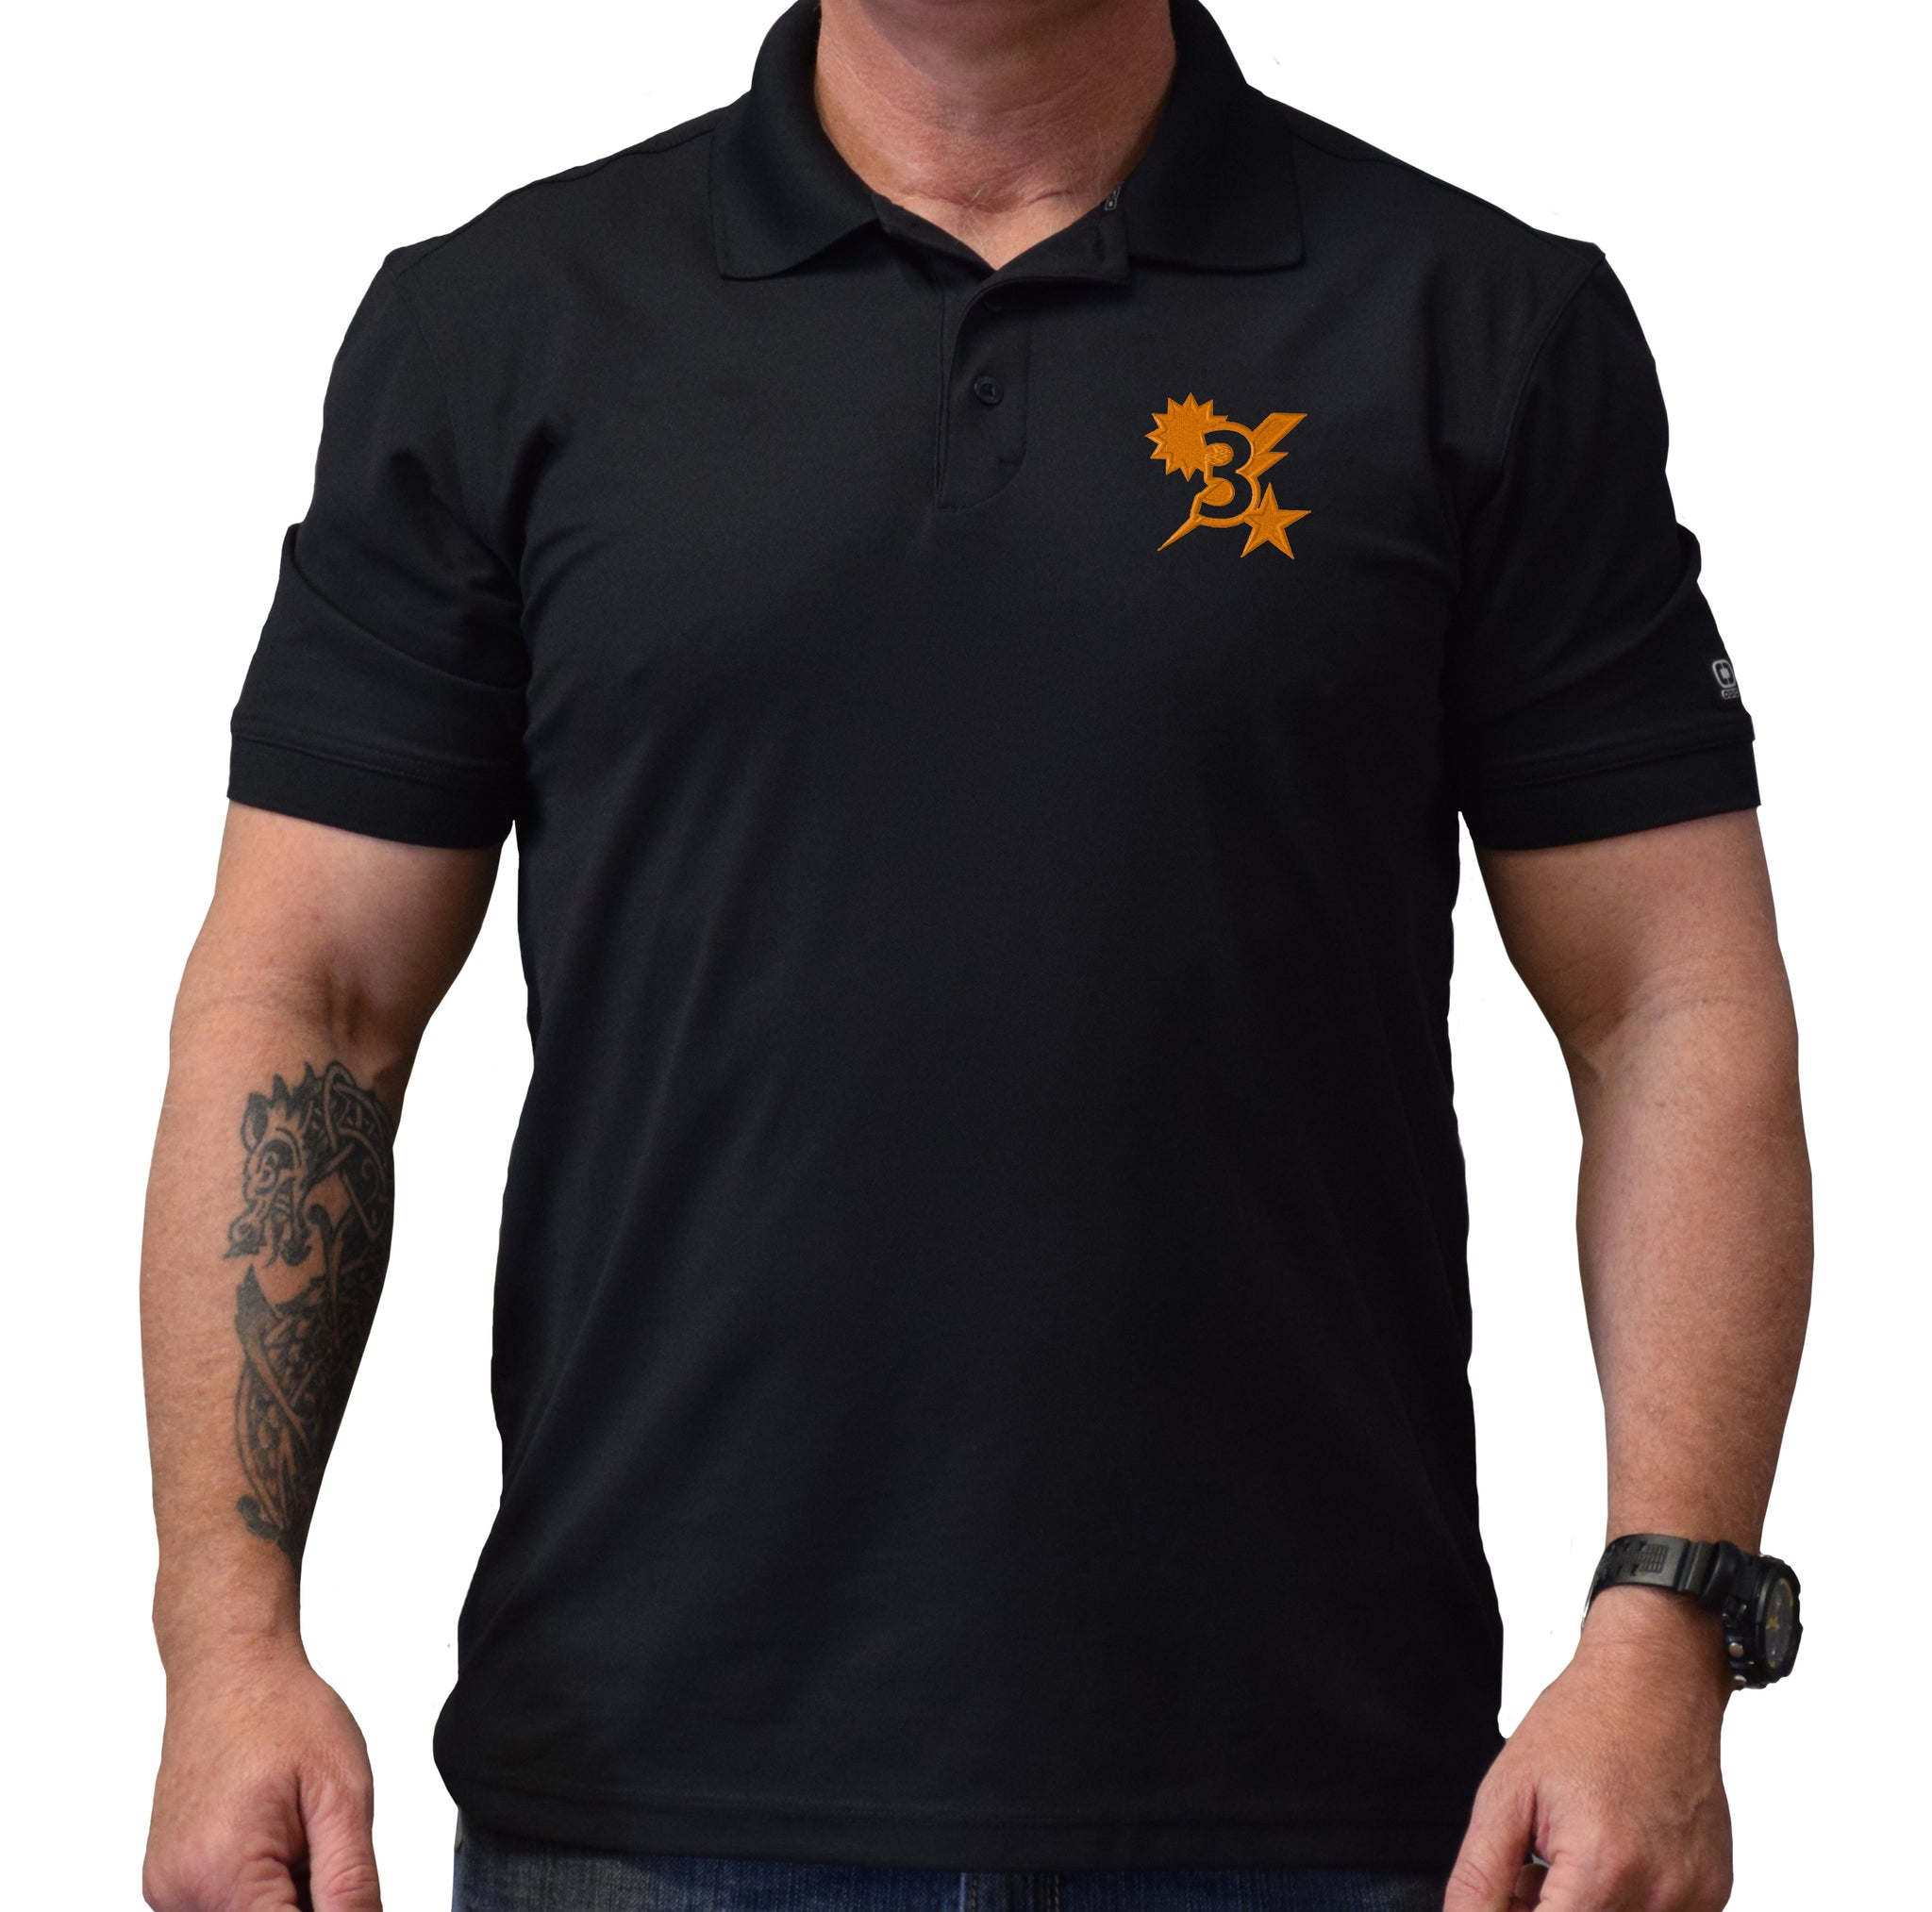 3D Batt Star Sun Bolt Polo